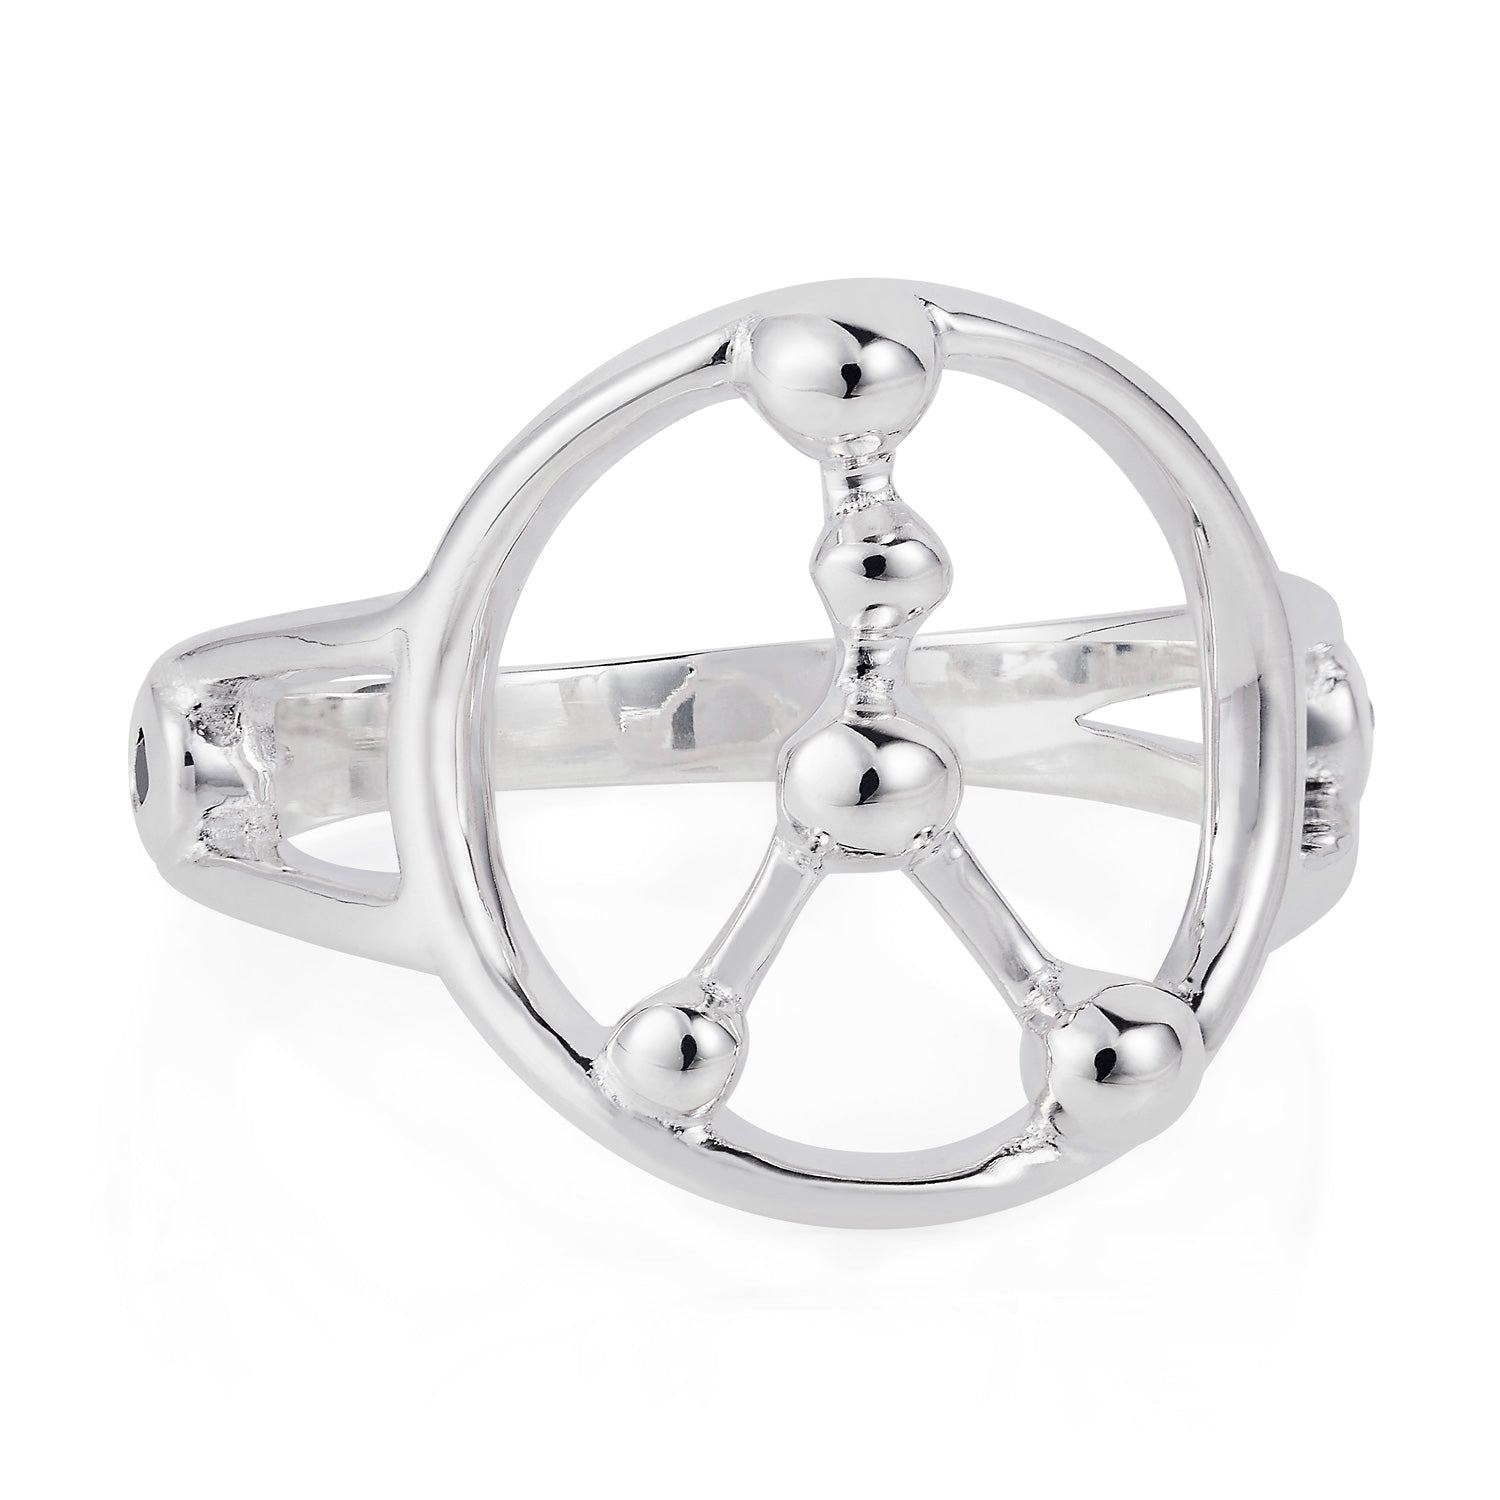 Star Sign Constellation Silver Ring by Yasmin Everley